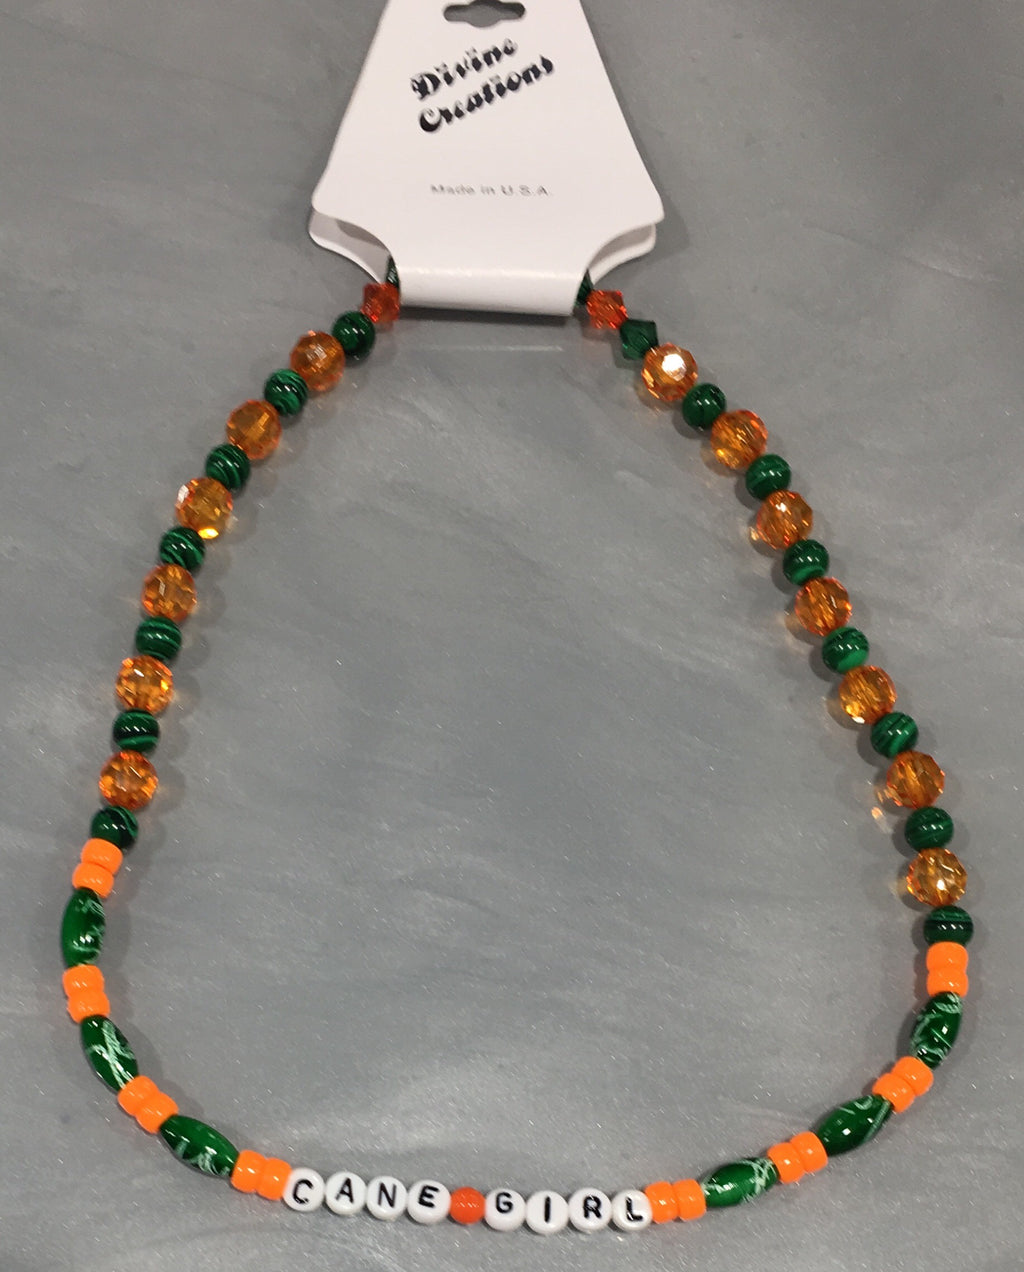 Miami Hurricanes Lil' Fan Necklace - Cane Girl